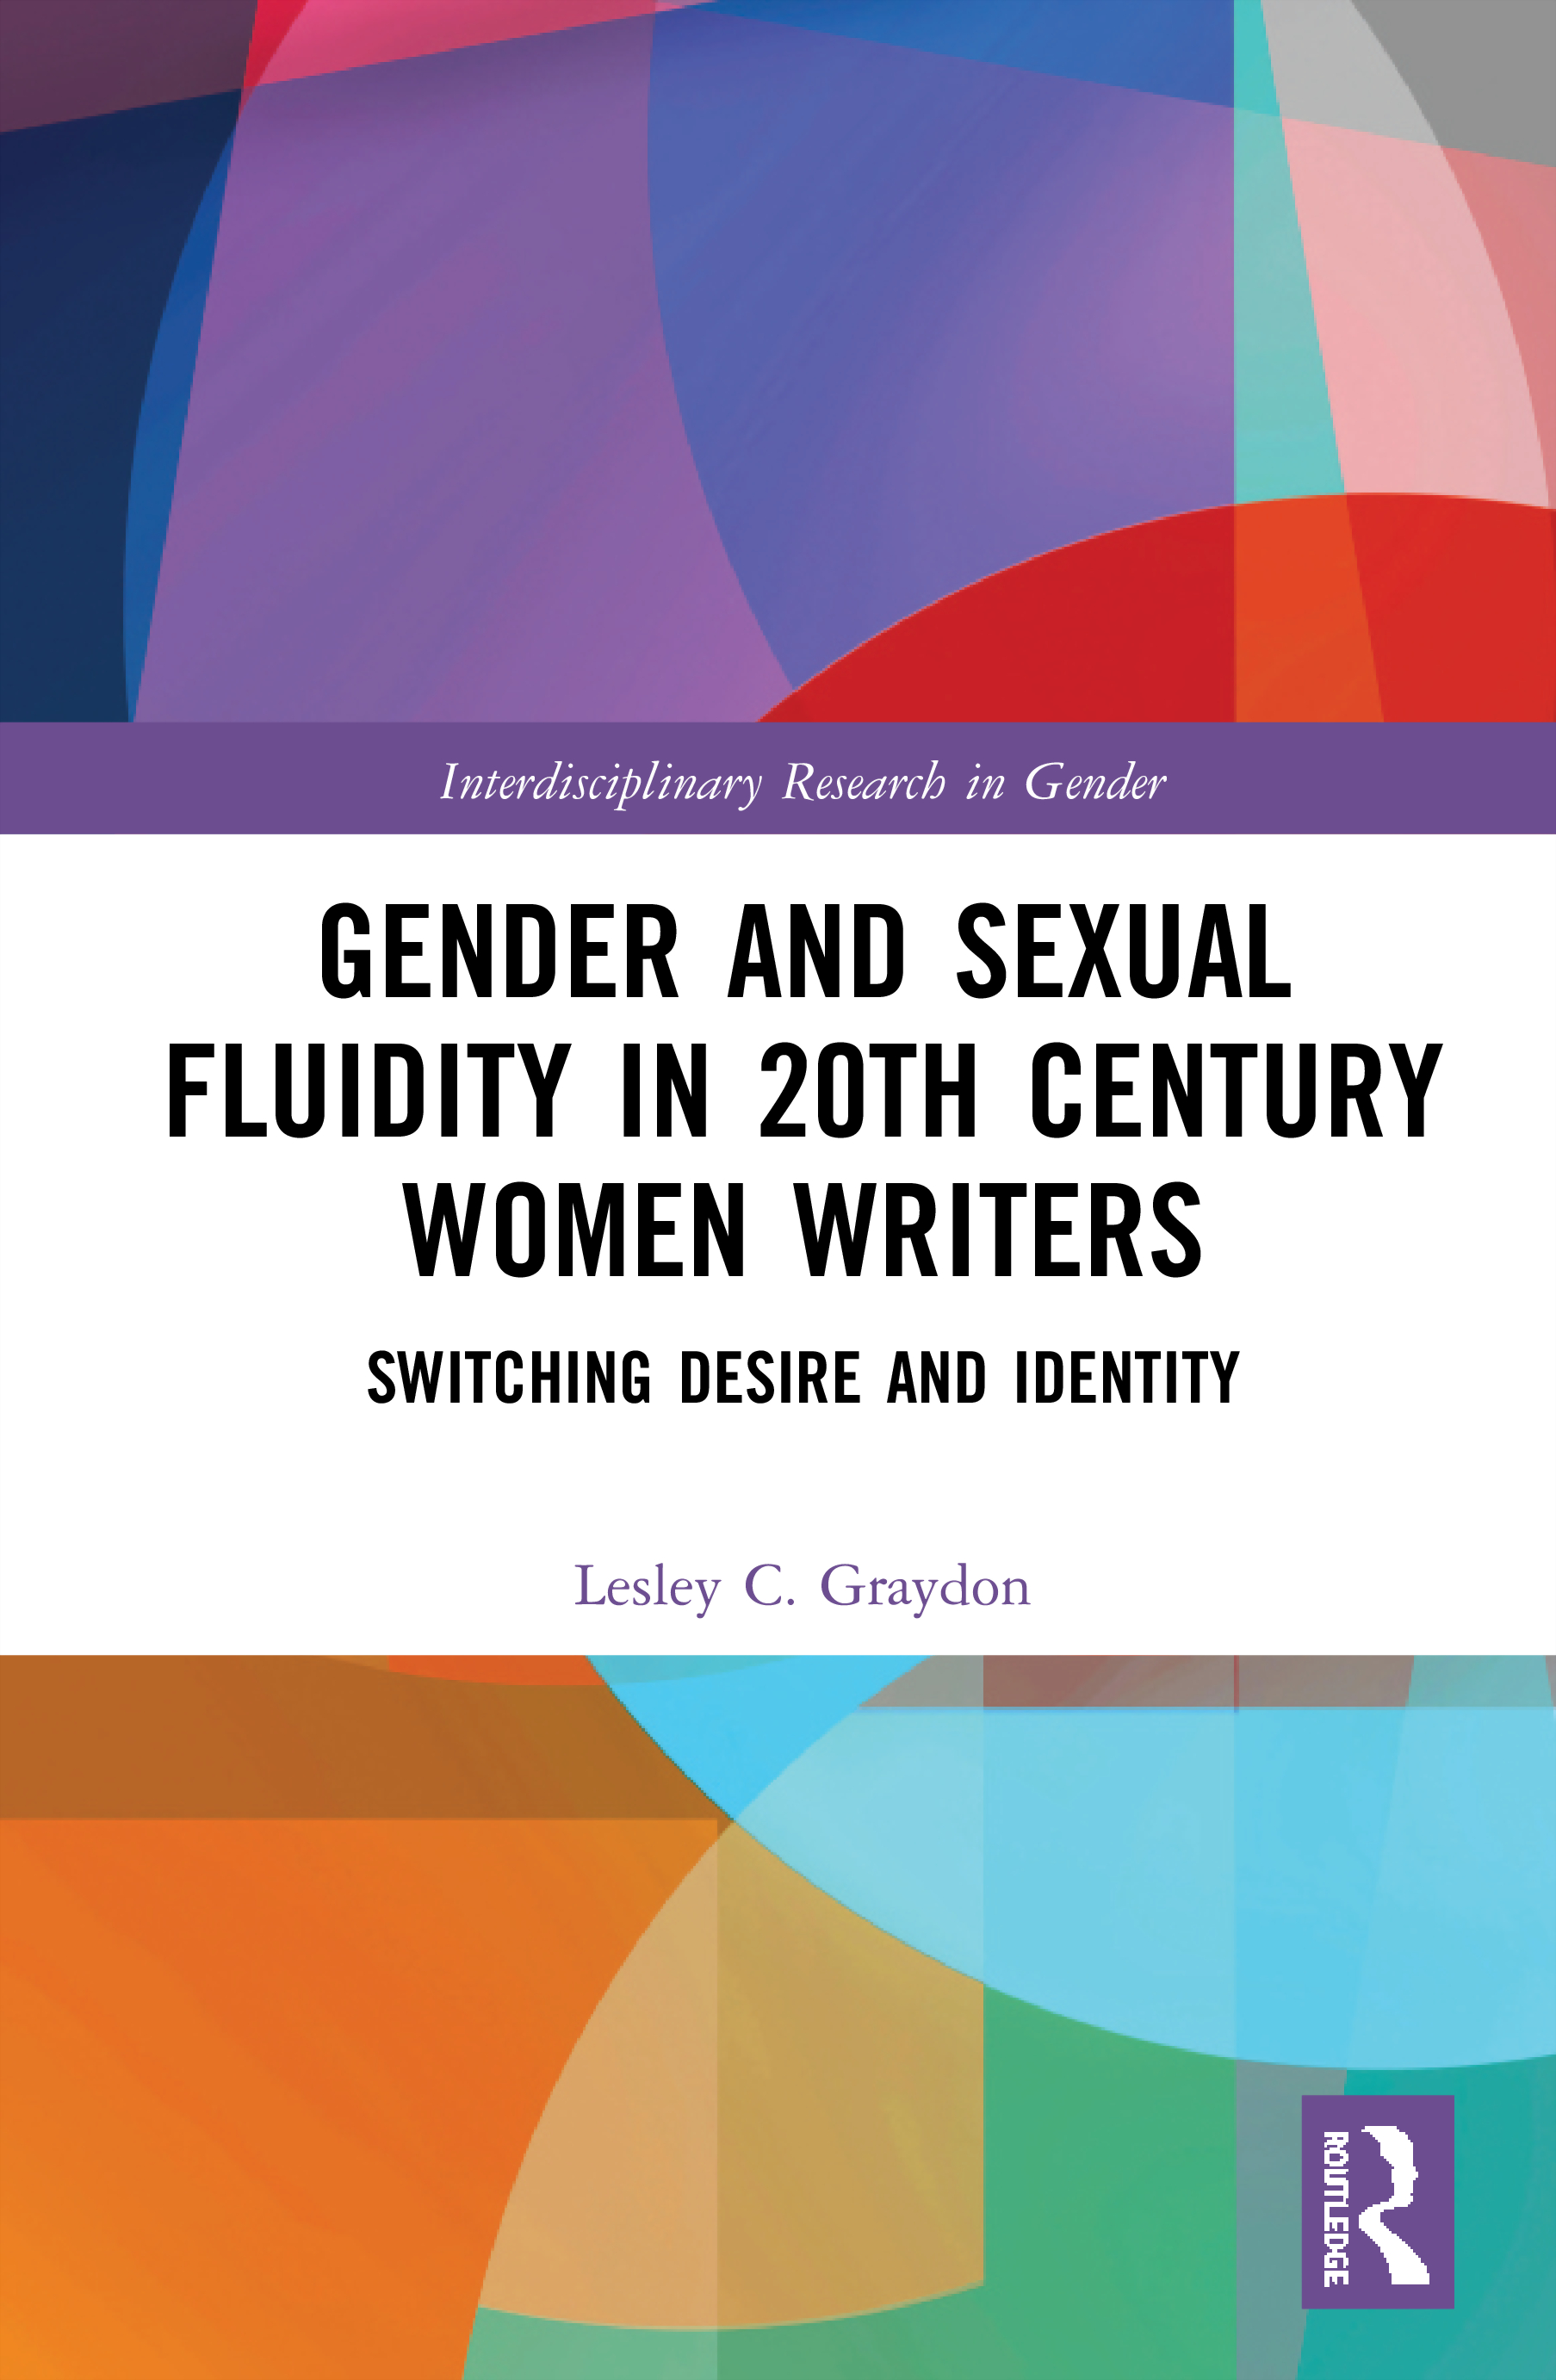 Gender and Sexual Fluidity in 20th Century Women Writers: Switching Desire and Identity, 1st Edition (Hardback) book cover